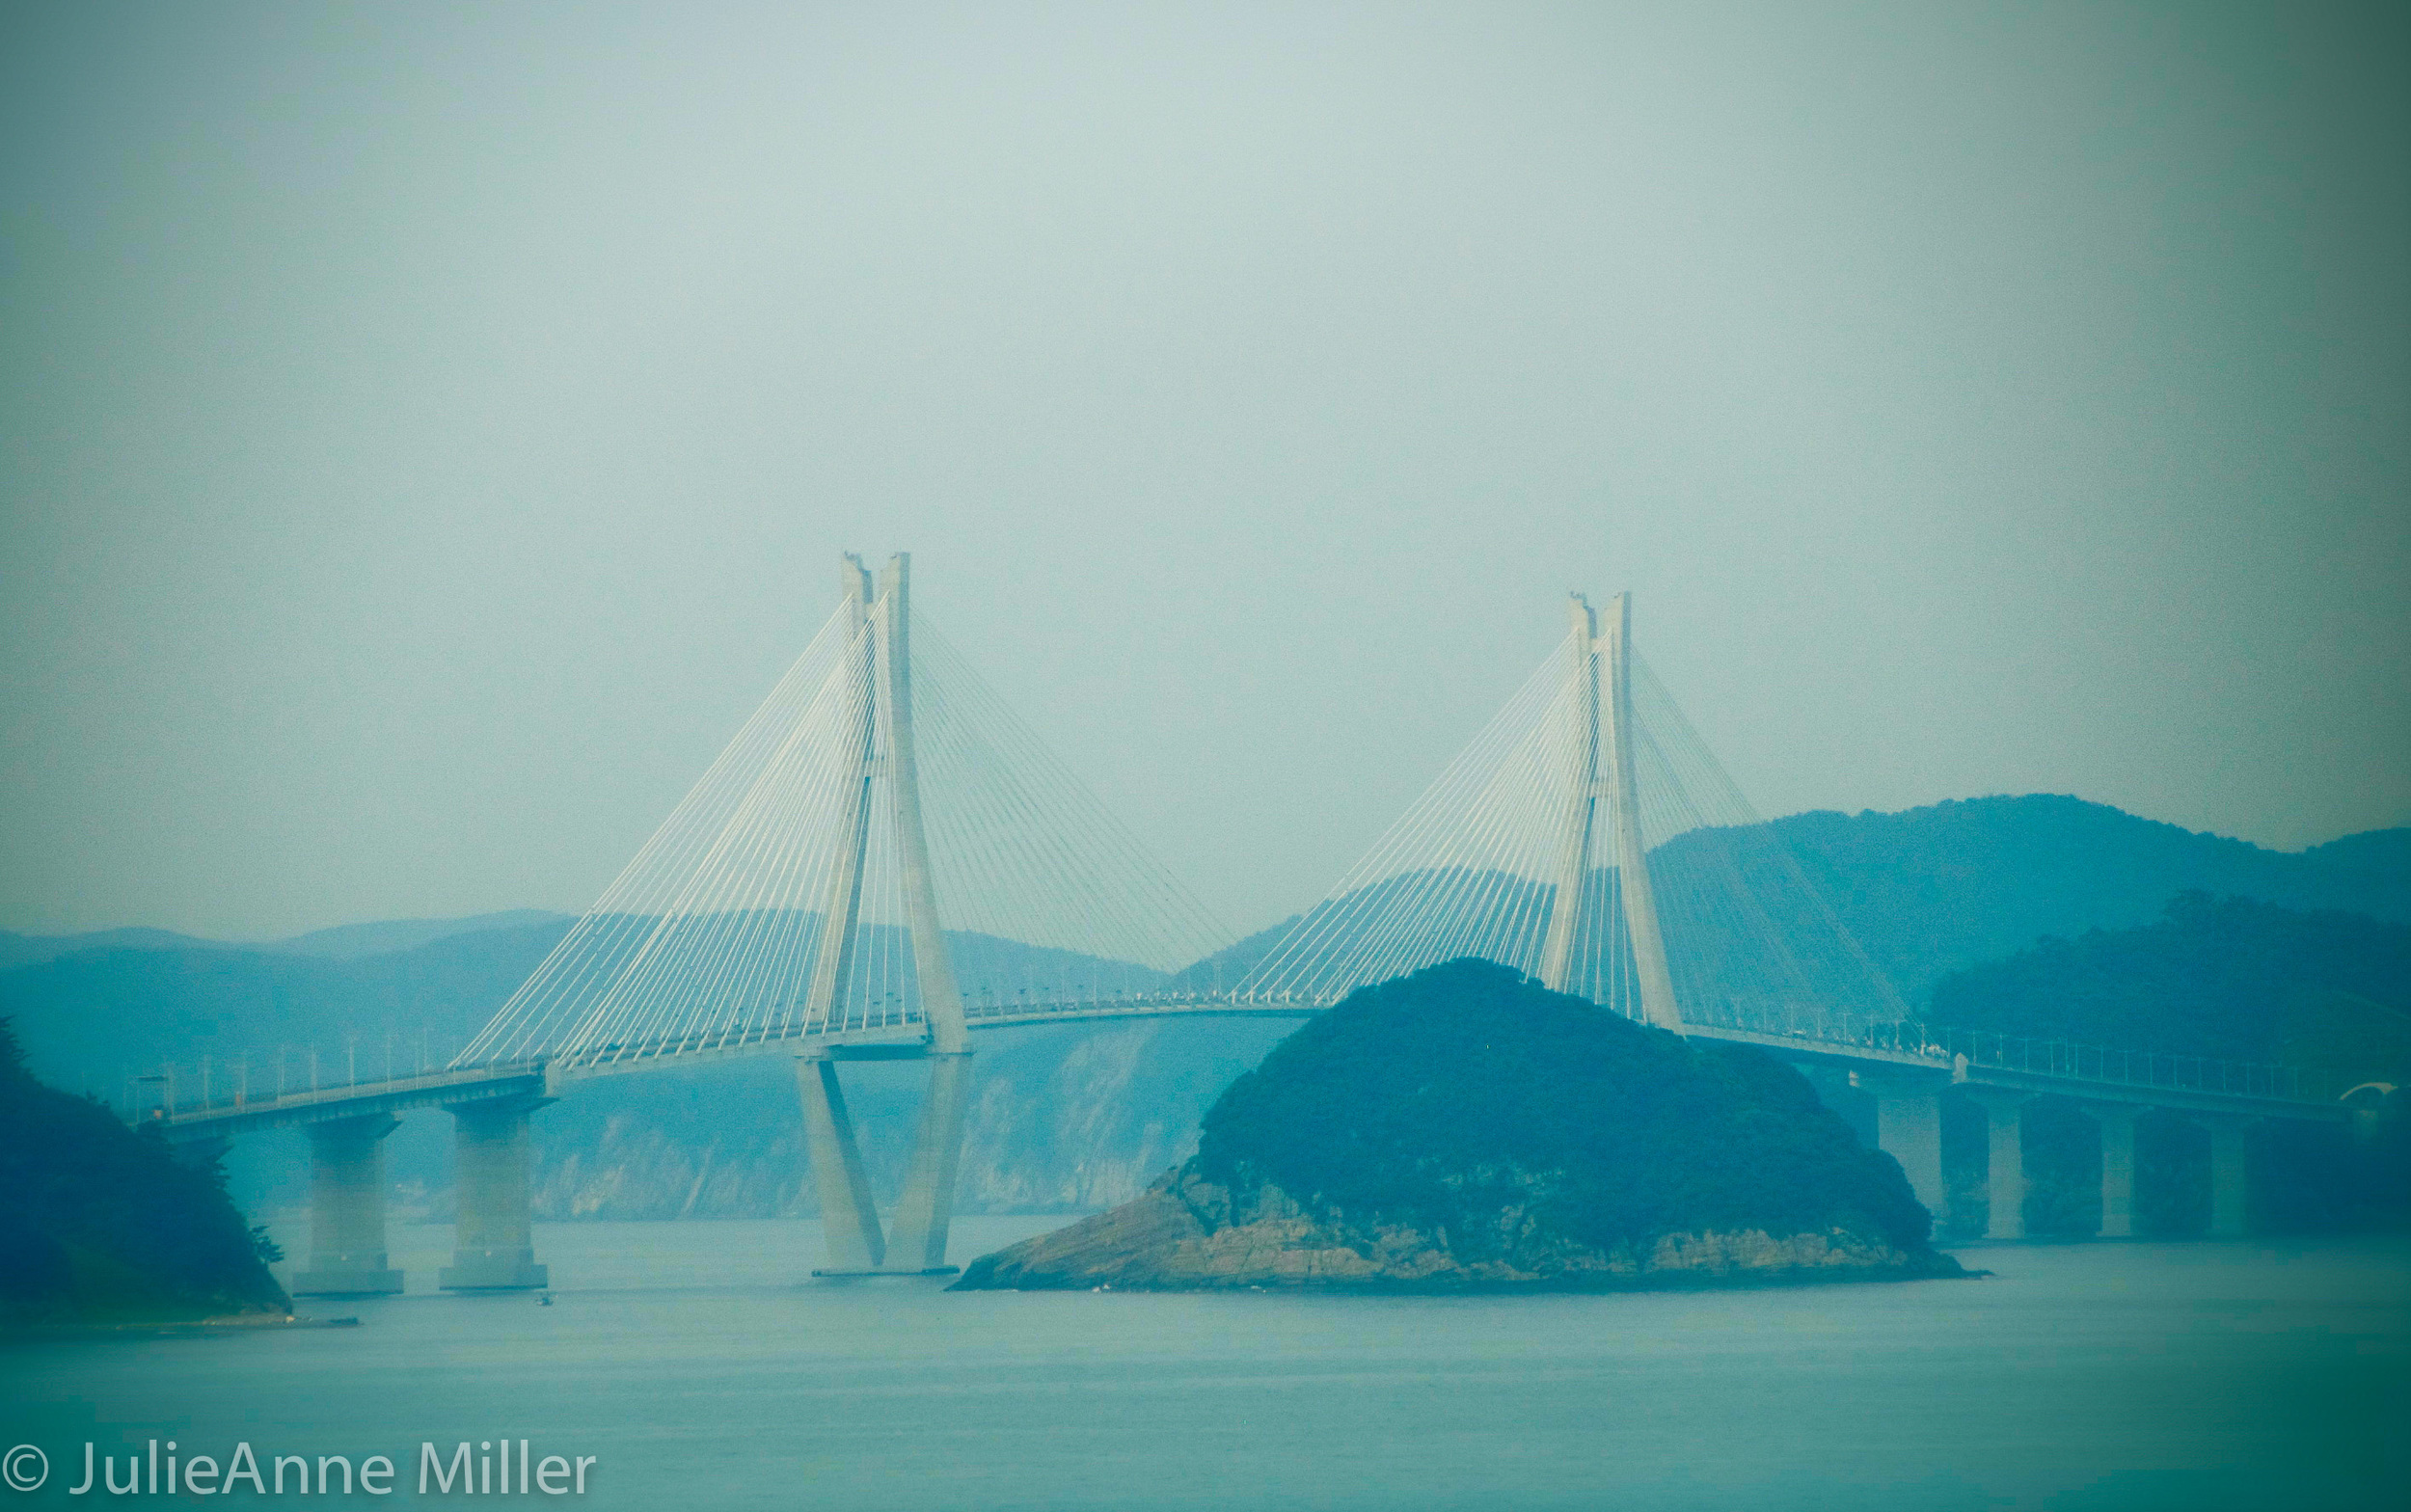 Geoje Bridge